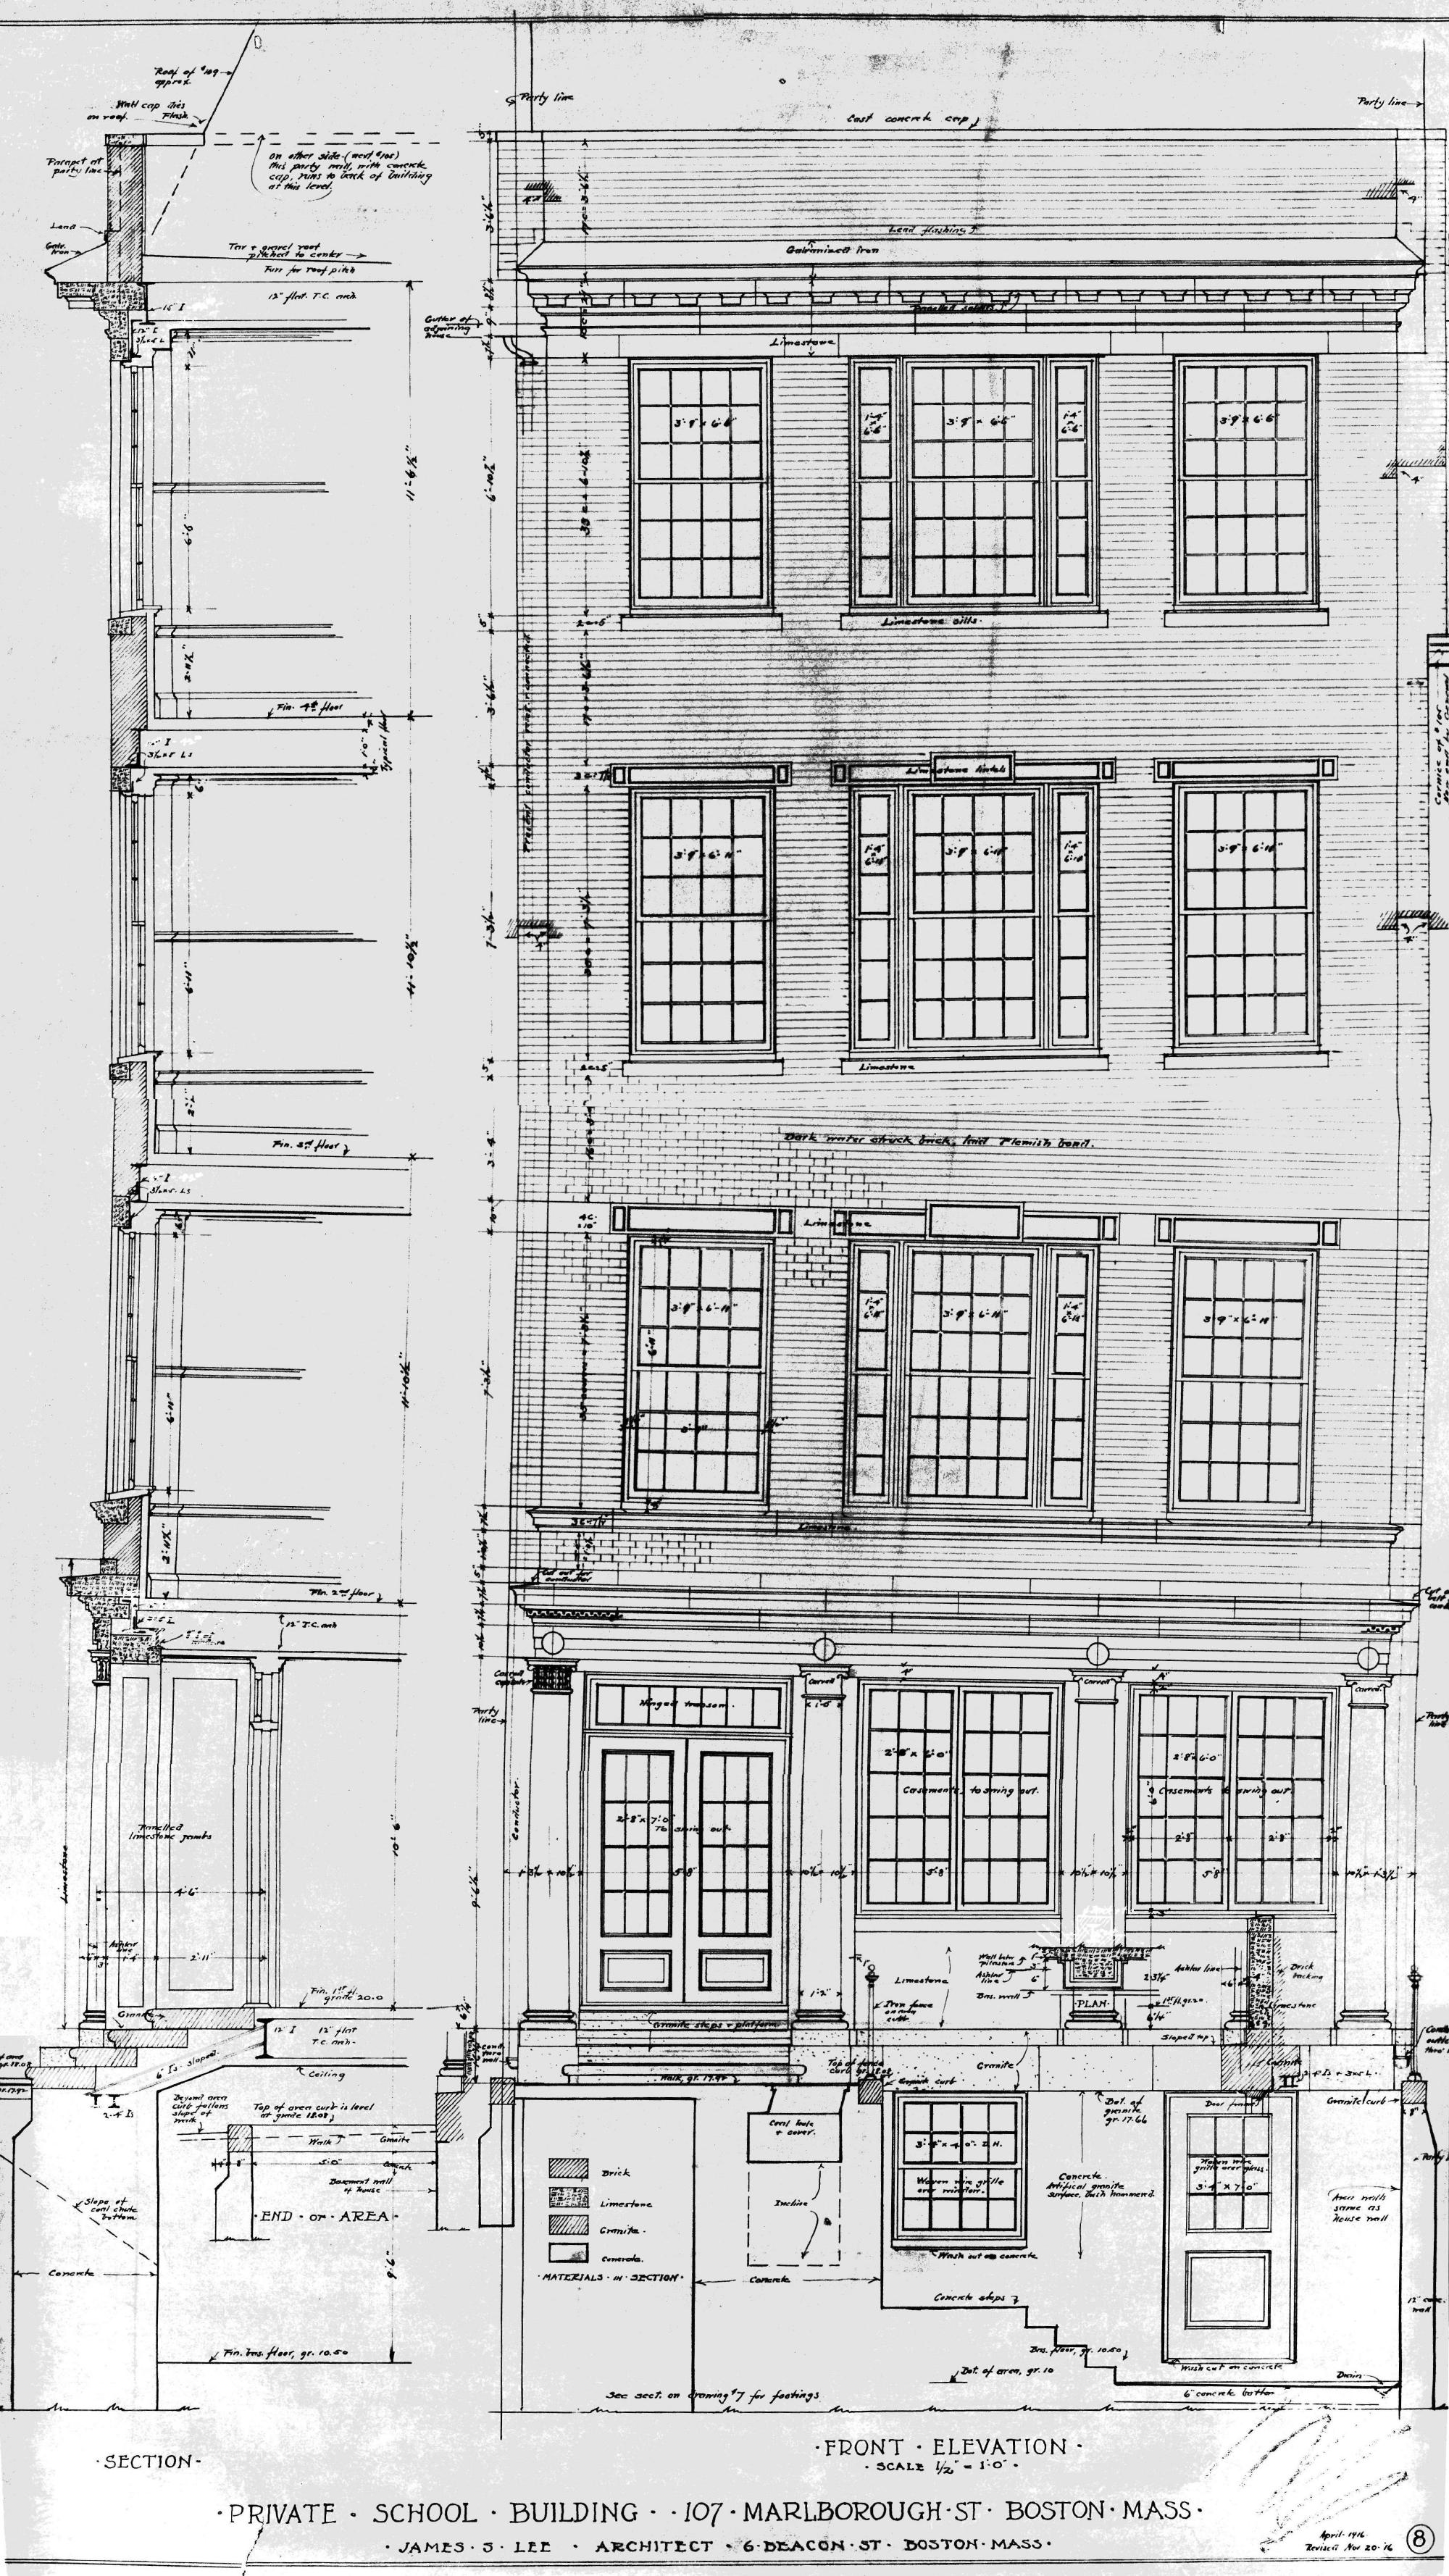 107 marlborough back bay houses front elevation of 107 marlborough by architect james s lee nov1916 courtesy of malvernweather